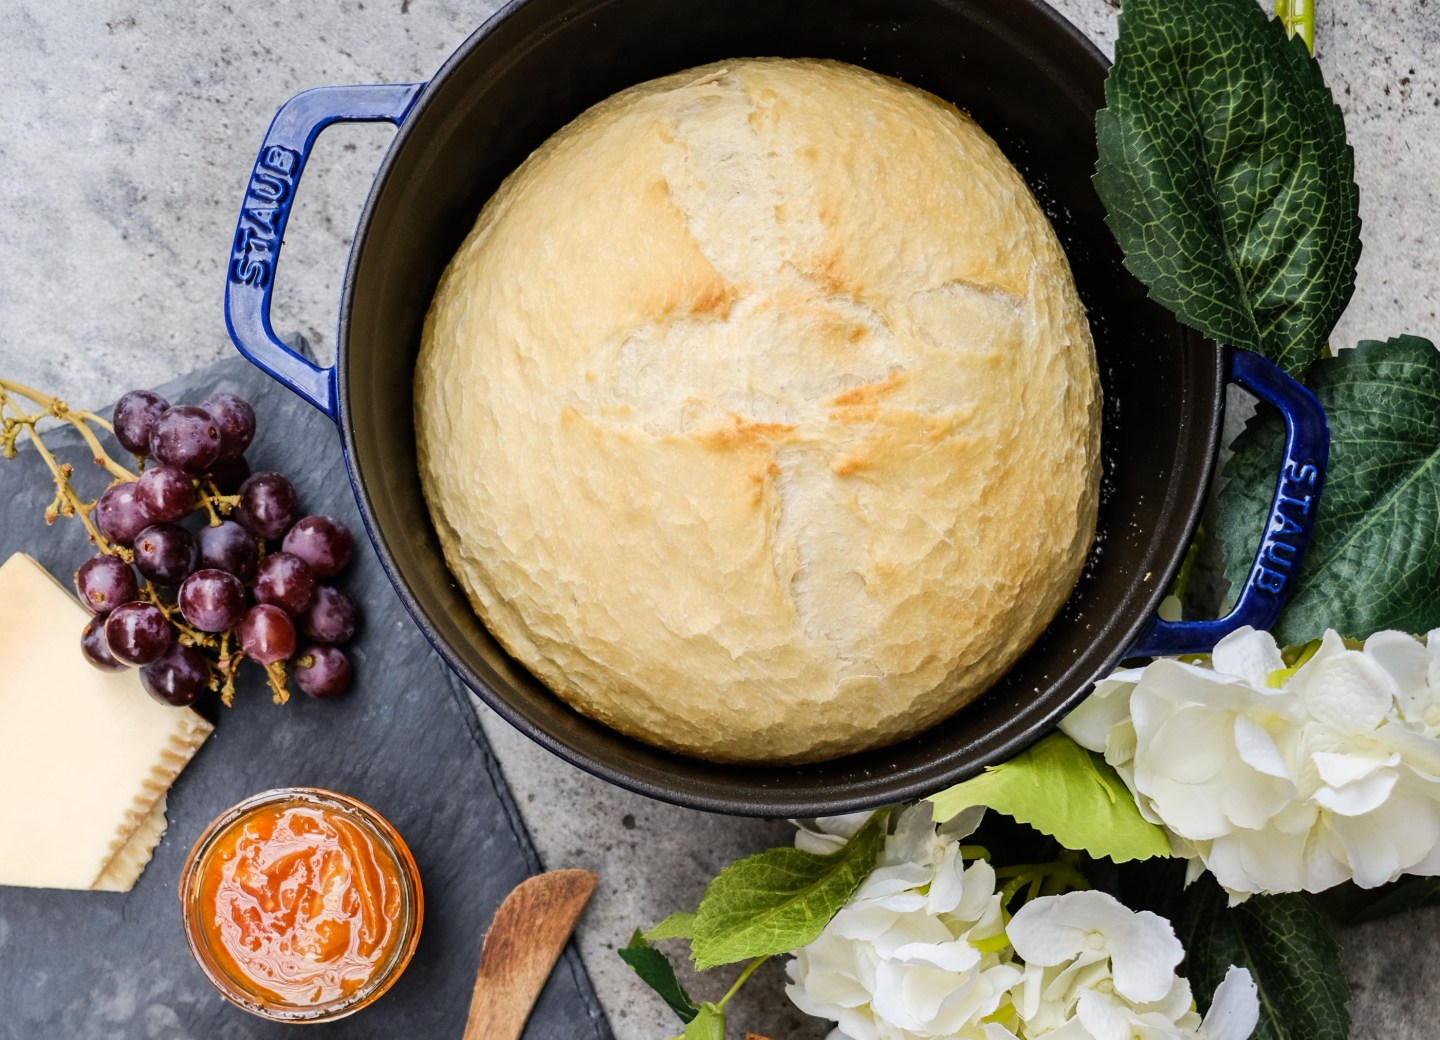 Dutch Oven Bread with Whipped Honey Butter